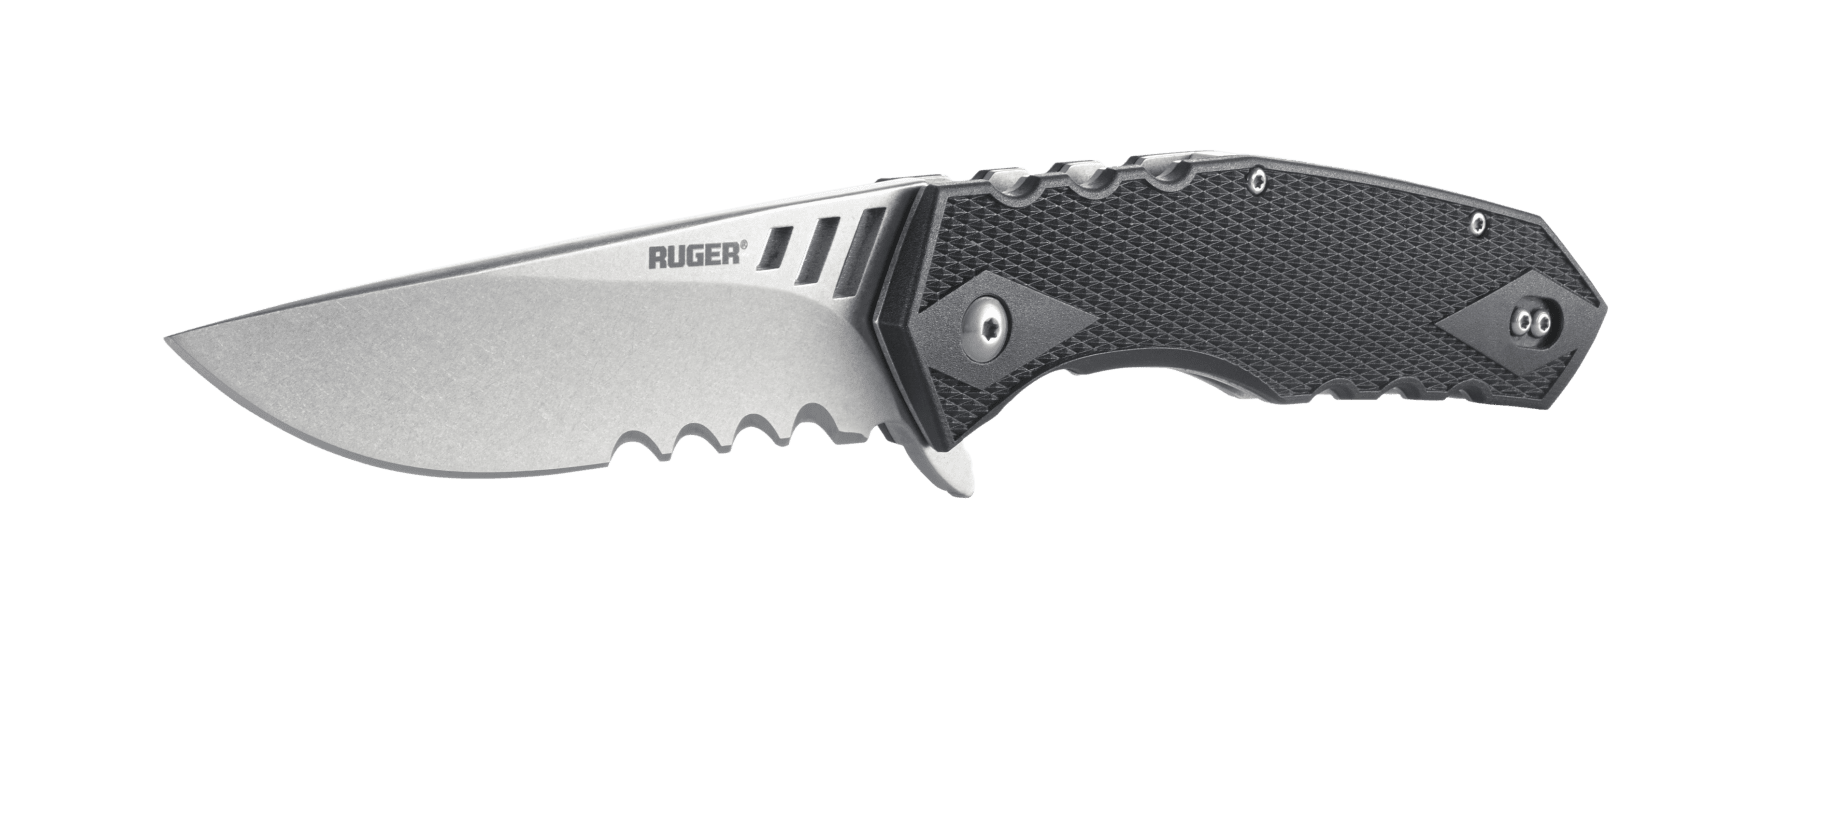 Складной нож Ruger® Knives Follow-Through™ Matthew Lerch's Design Ball-Bearings Flipper, Stonewashed Combo Blade, Black GRN HandleРаскладные ножи<br>Складной нож Ruger® Knives Follow-Through™ Matthew Lerch's Design Ball-Bearings Flipper, Stonewashed Combo Blade, Black GRN Handle<br>